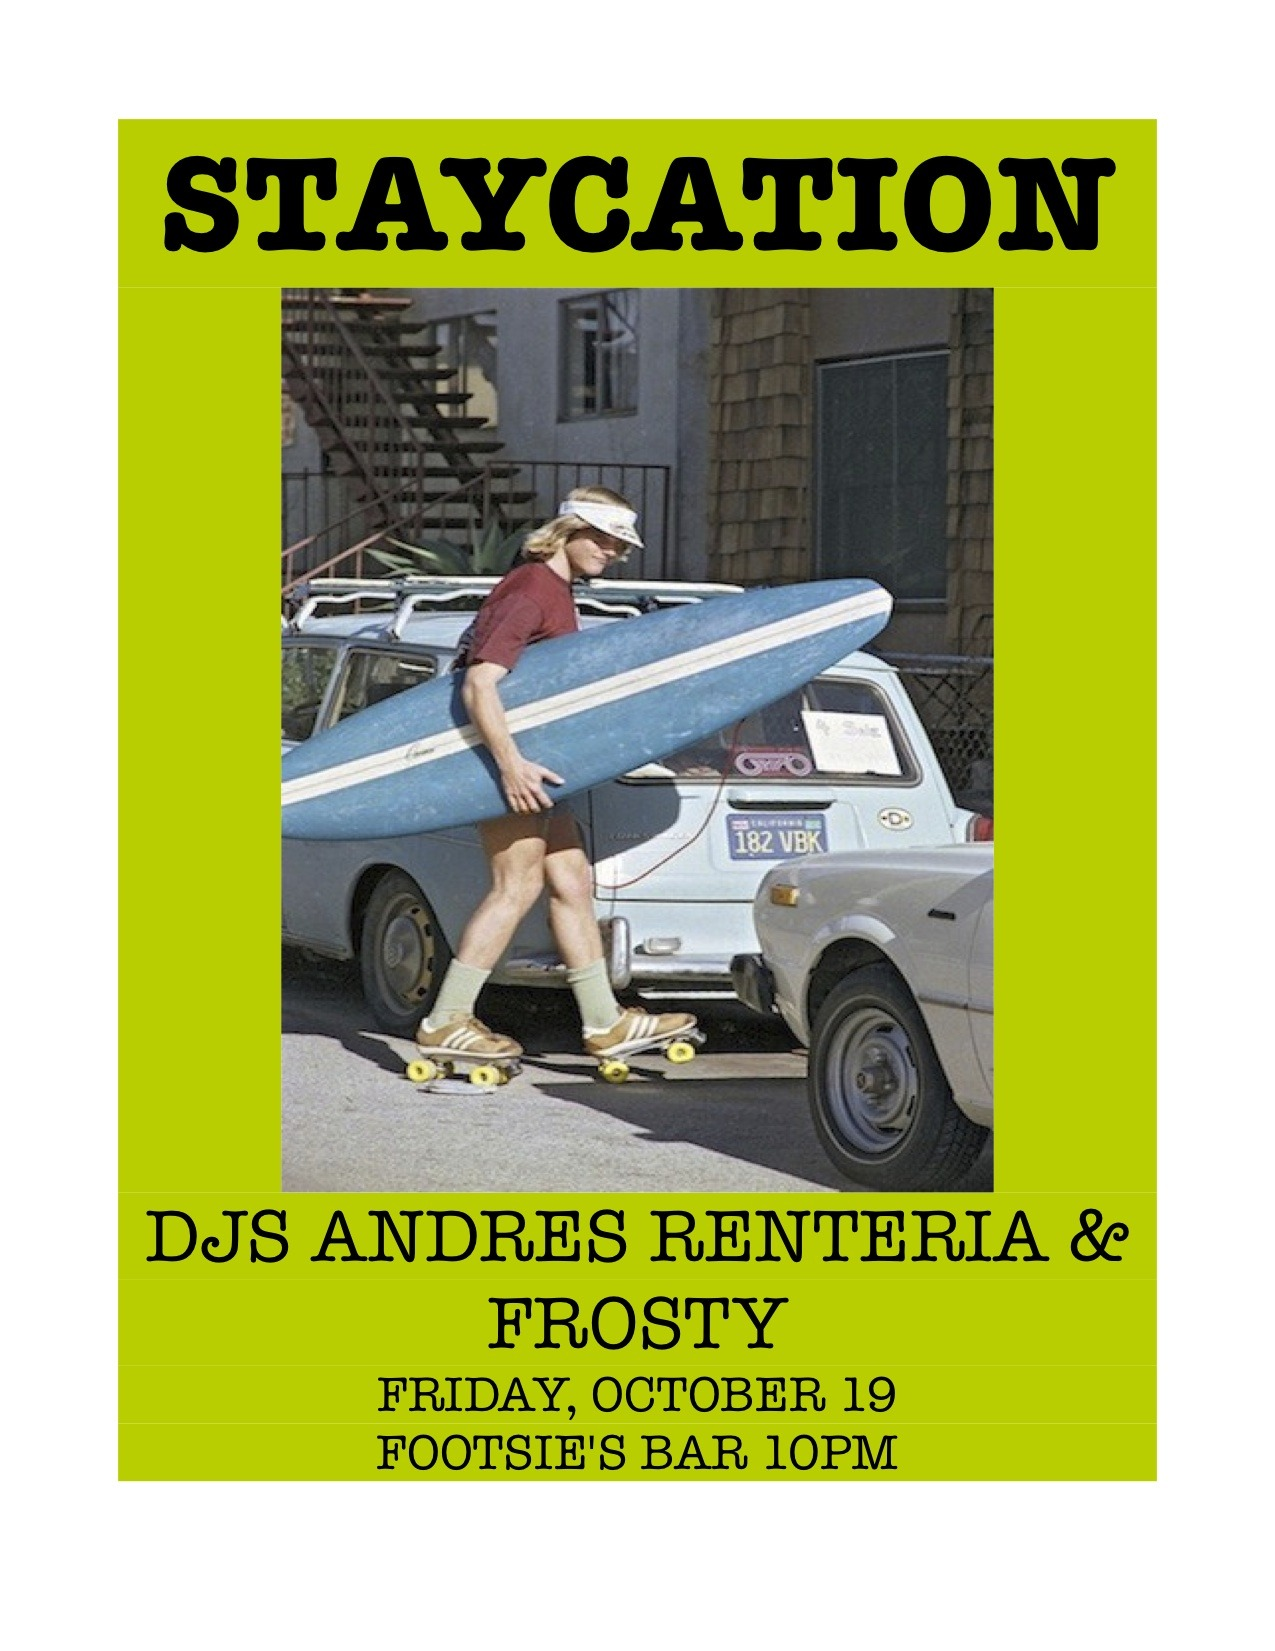 This Friday at Footsie's Bar!!!!!  STAYCATION with me, Andres Renteria and DJ Frosty from dublab.com!!!!!  10pm-2am and it's FREE!!!  We play soul, rock, psych, funky 45s, international shakers and more!!!!!!!